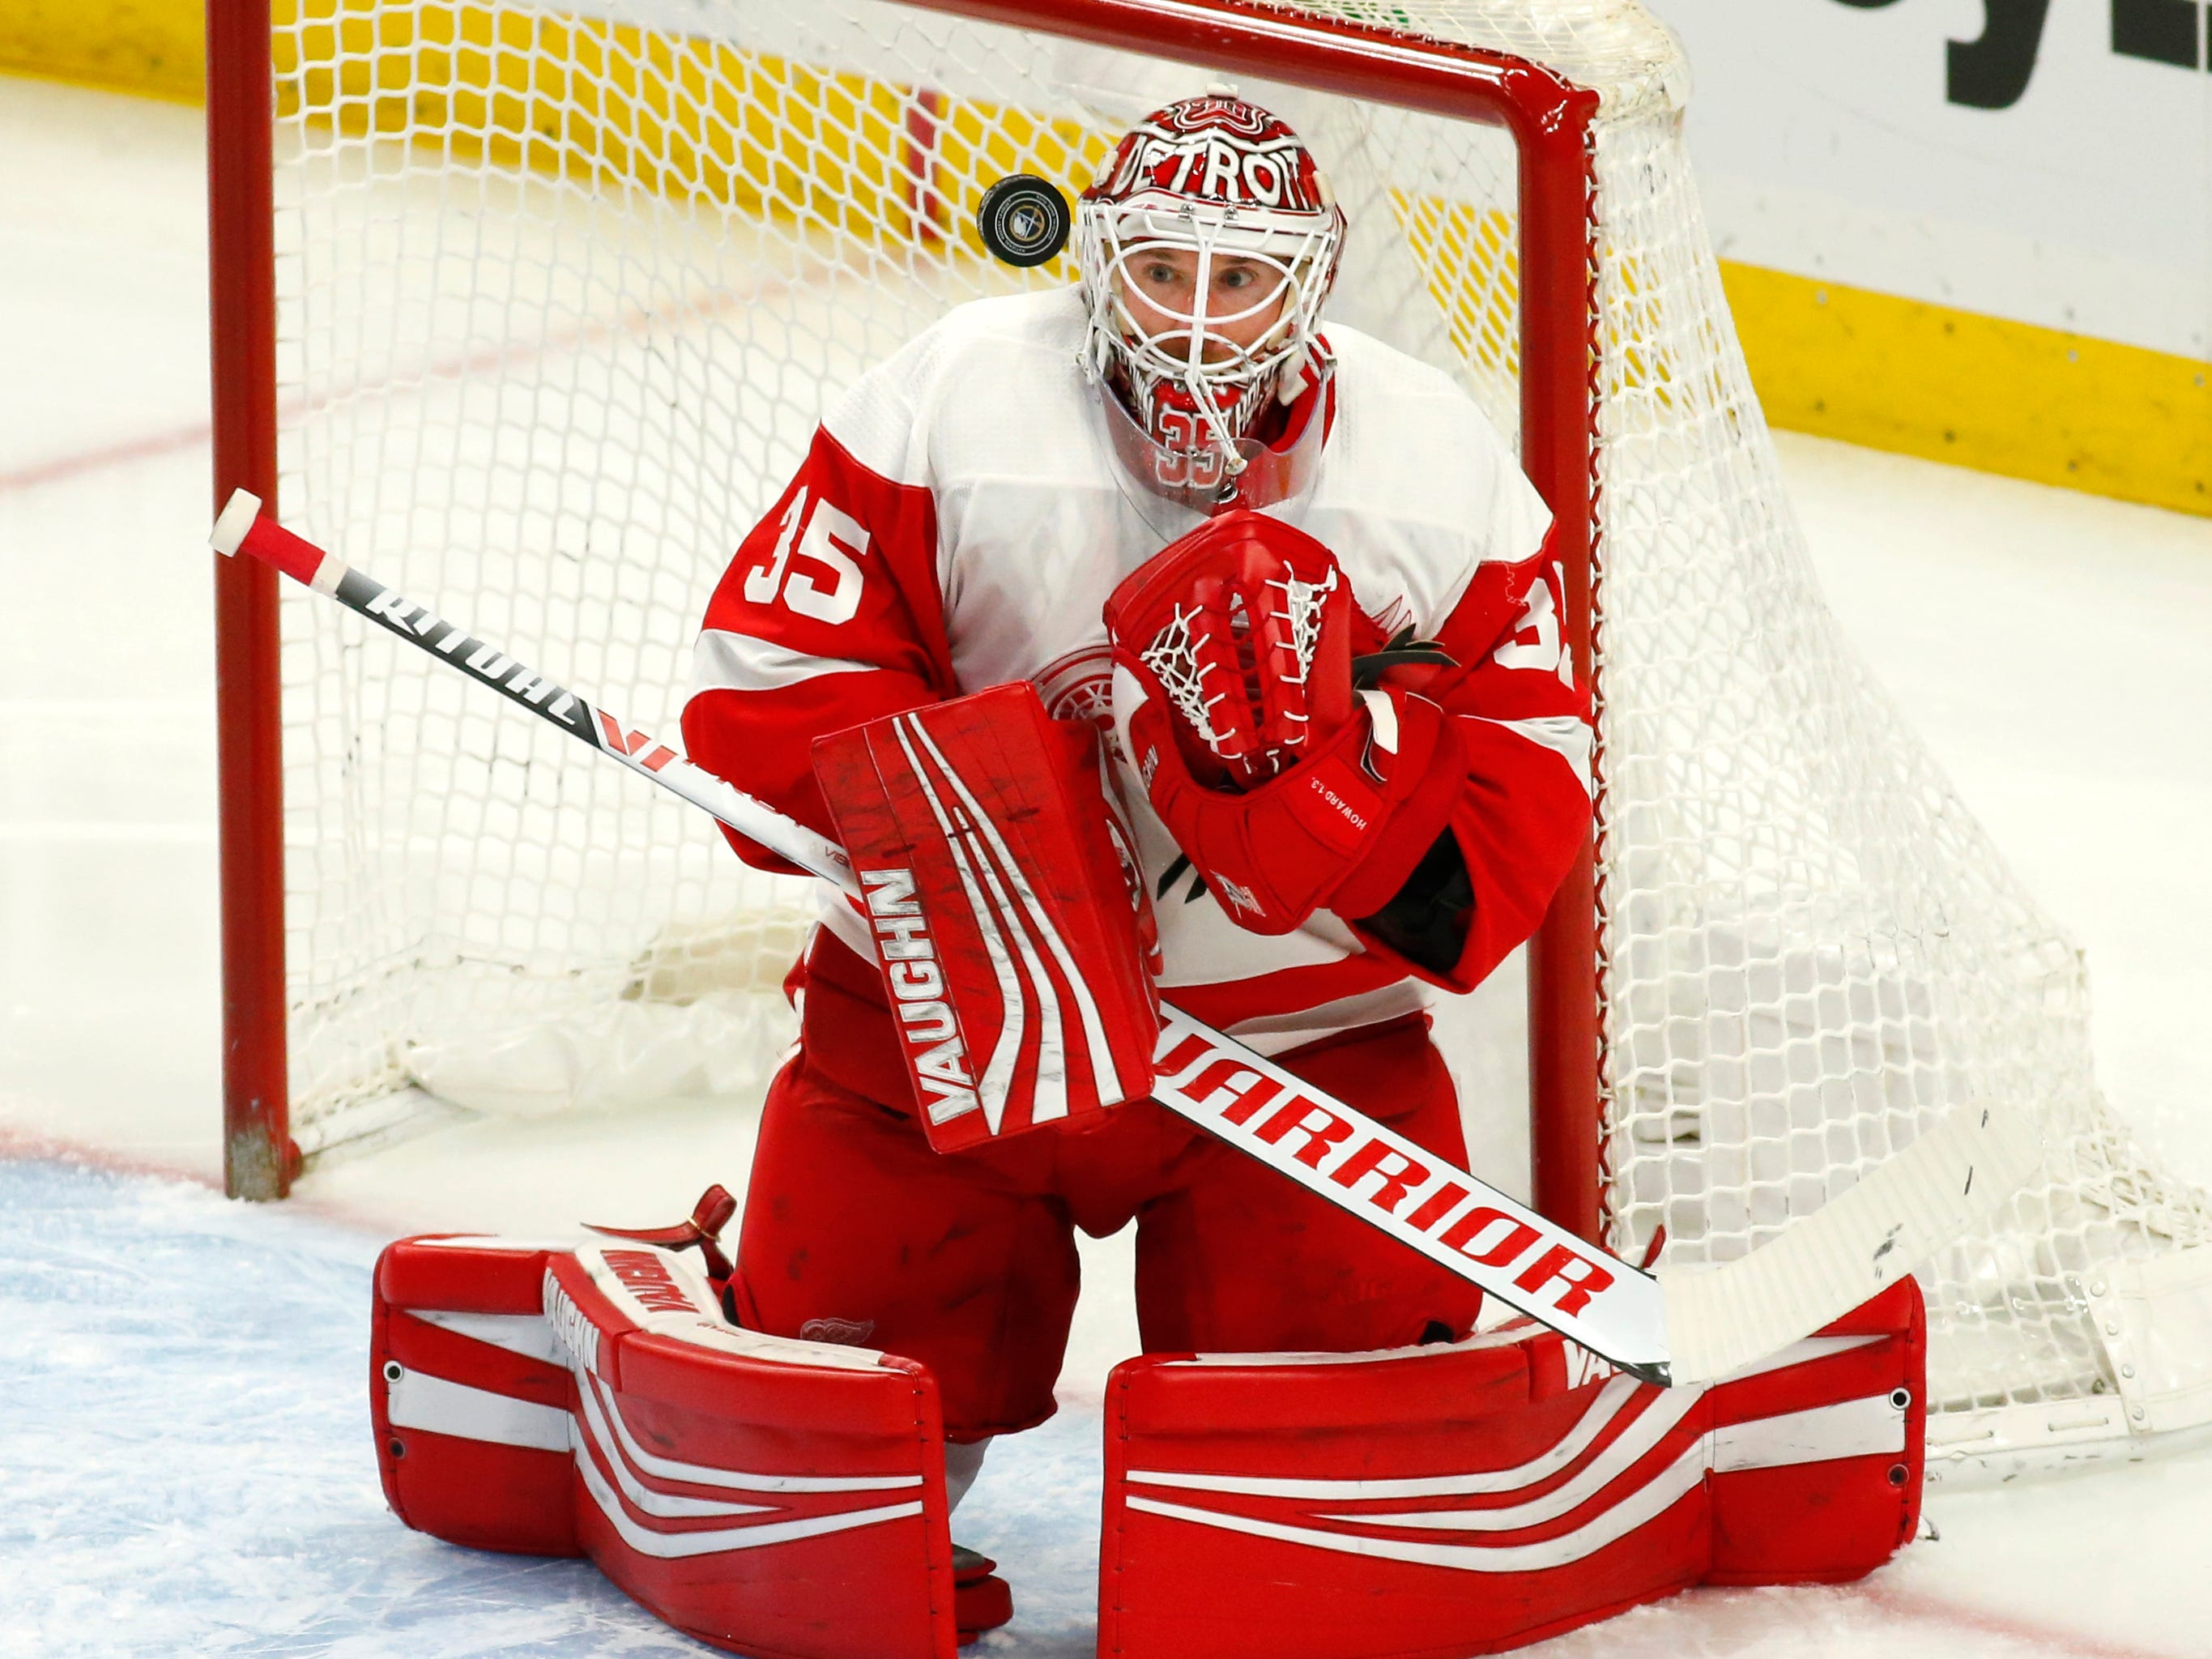 Red Wings goalie Jimmy Howard makes a save during the first period on Saturday, Feb. 9, 2019, in Buffalo N.Y.